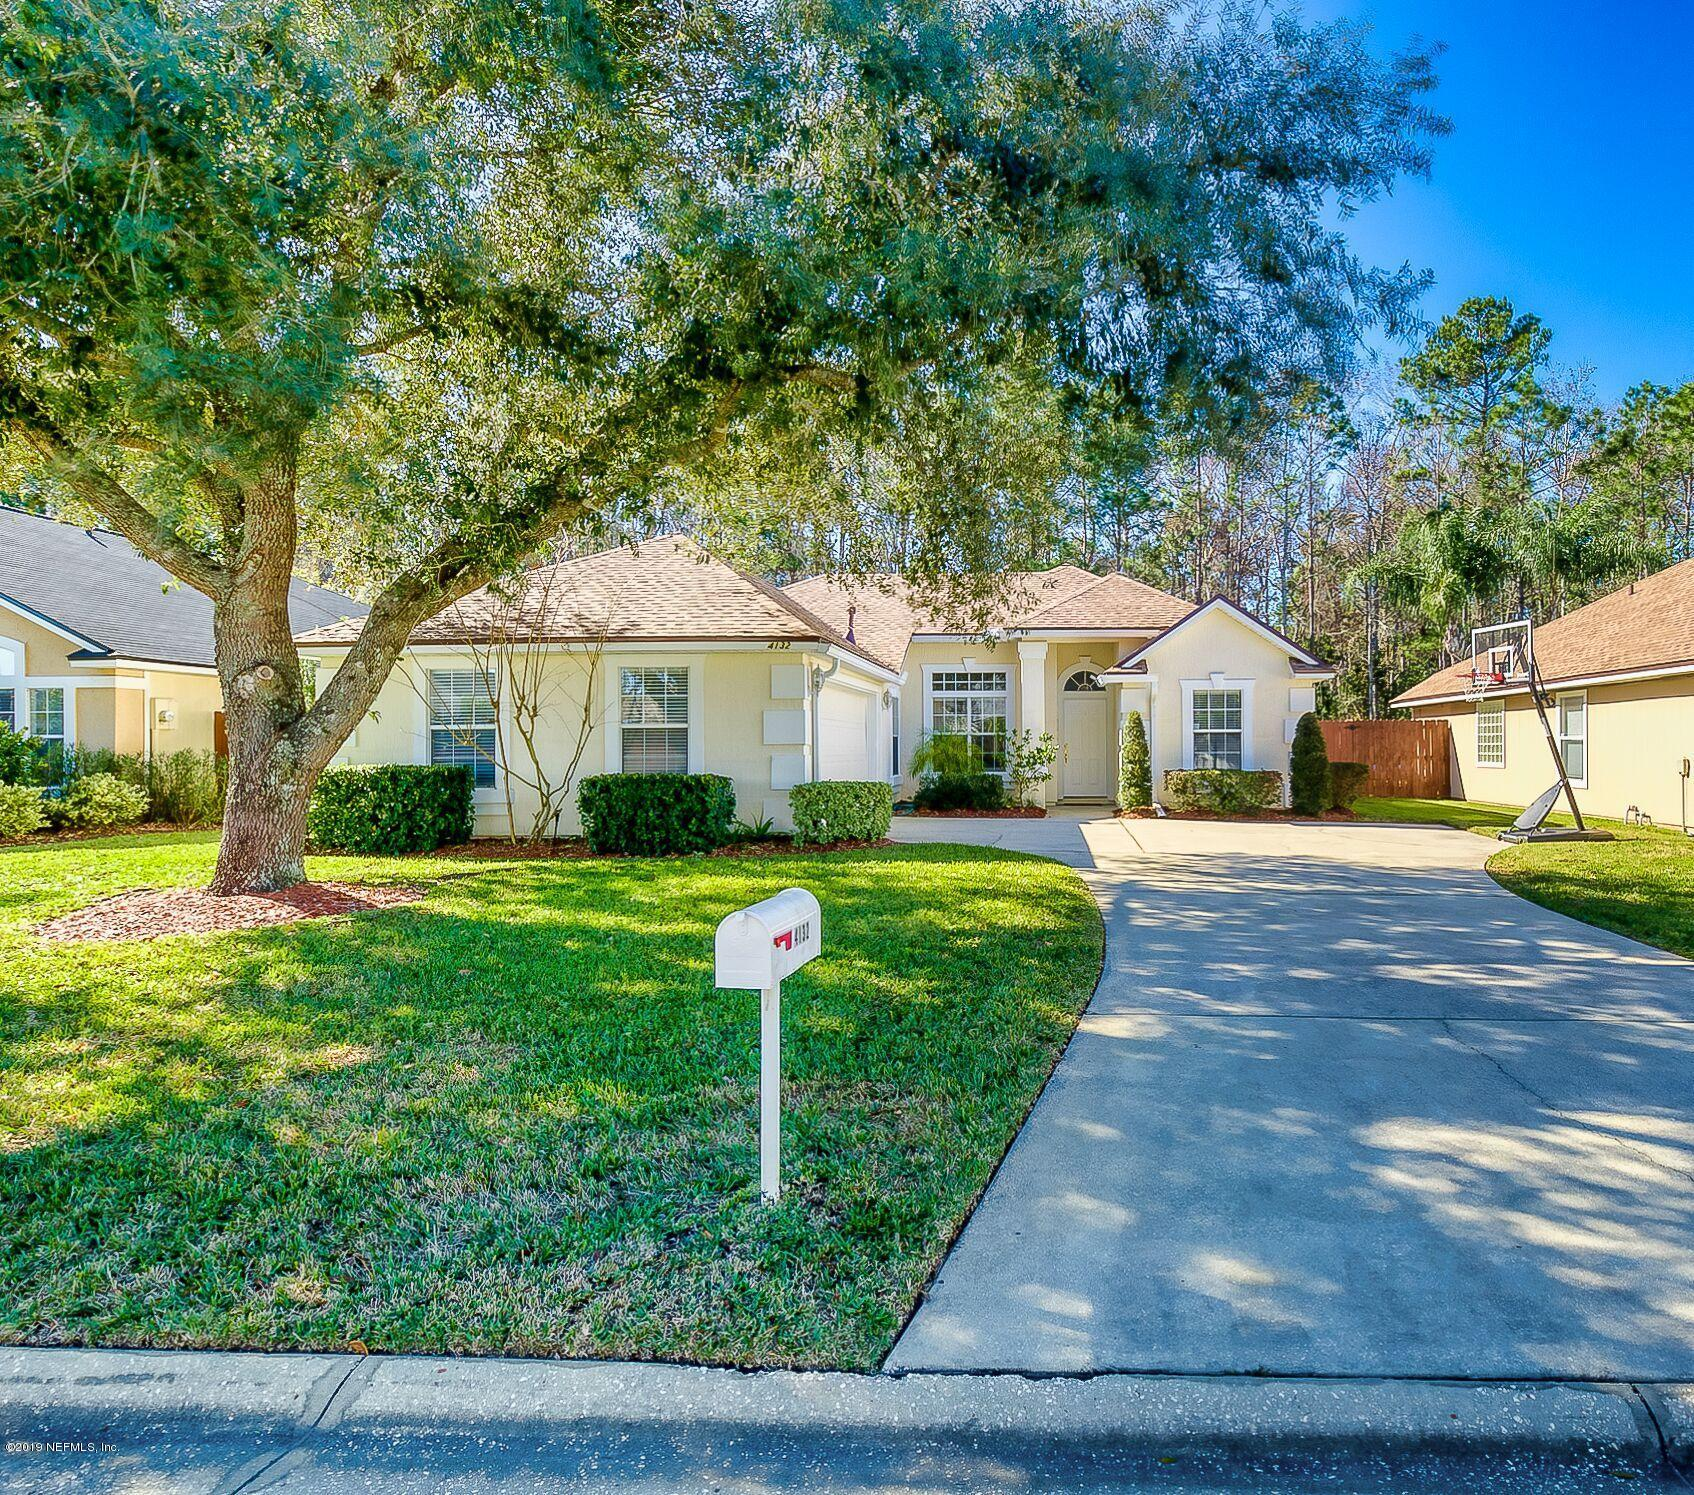 4132 RIPKEN, JACKSONVILLE, FLORIDA 32224, 4 Bedrooms Bedrooms, ,2 BathroomsBathrooms,Residential - single family,For sale,RIPKEN,974114